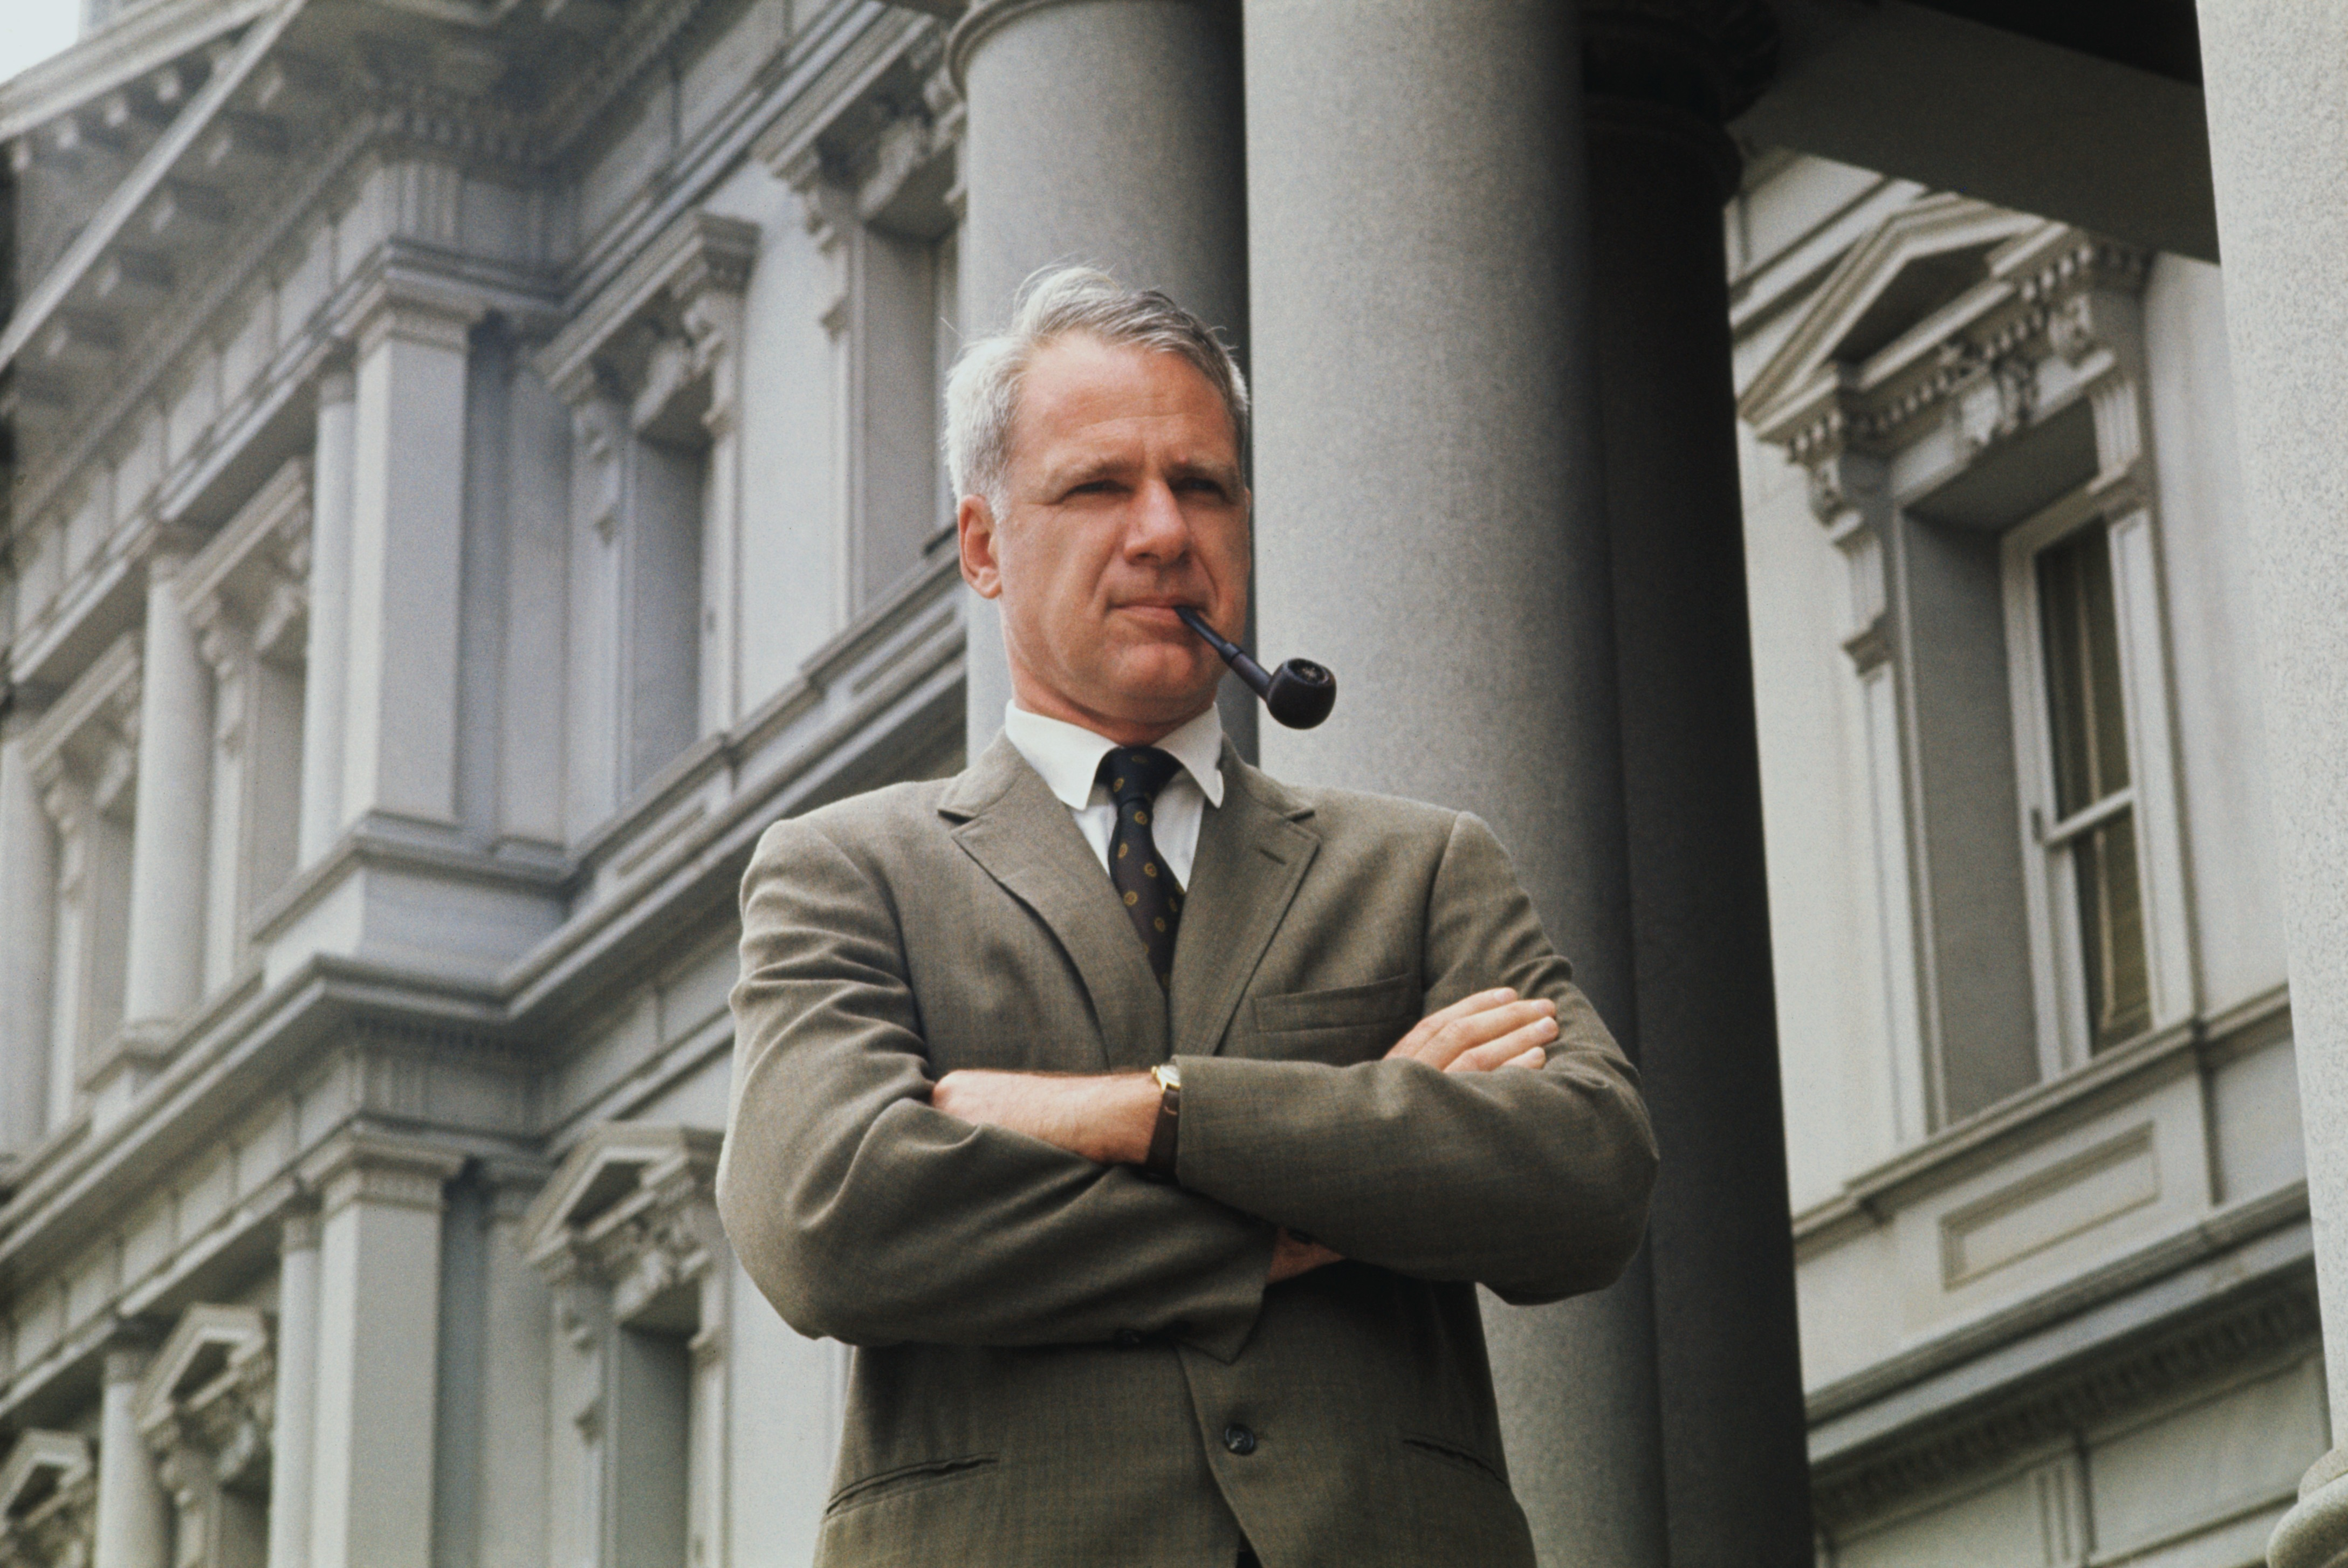 James Schlesinger, photographed in Washington in 1971, died March 27 at 85